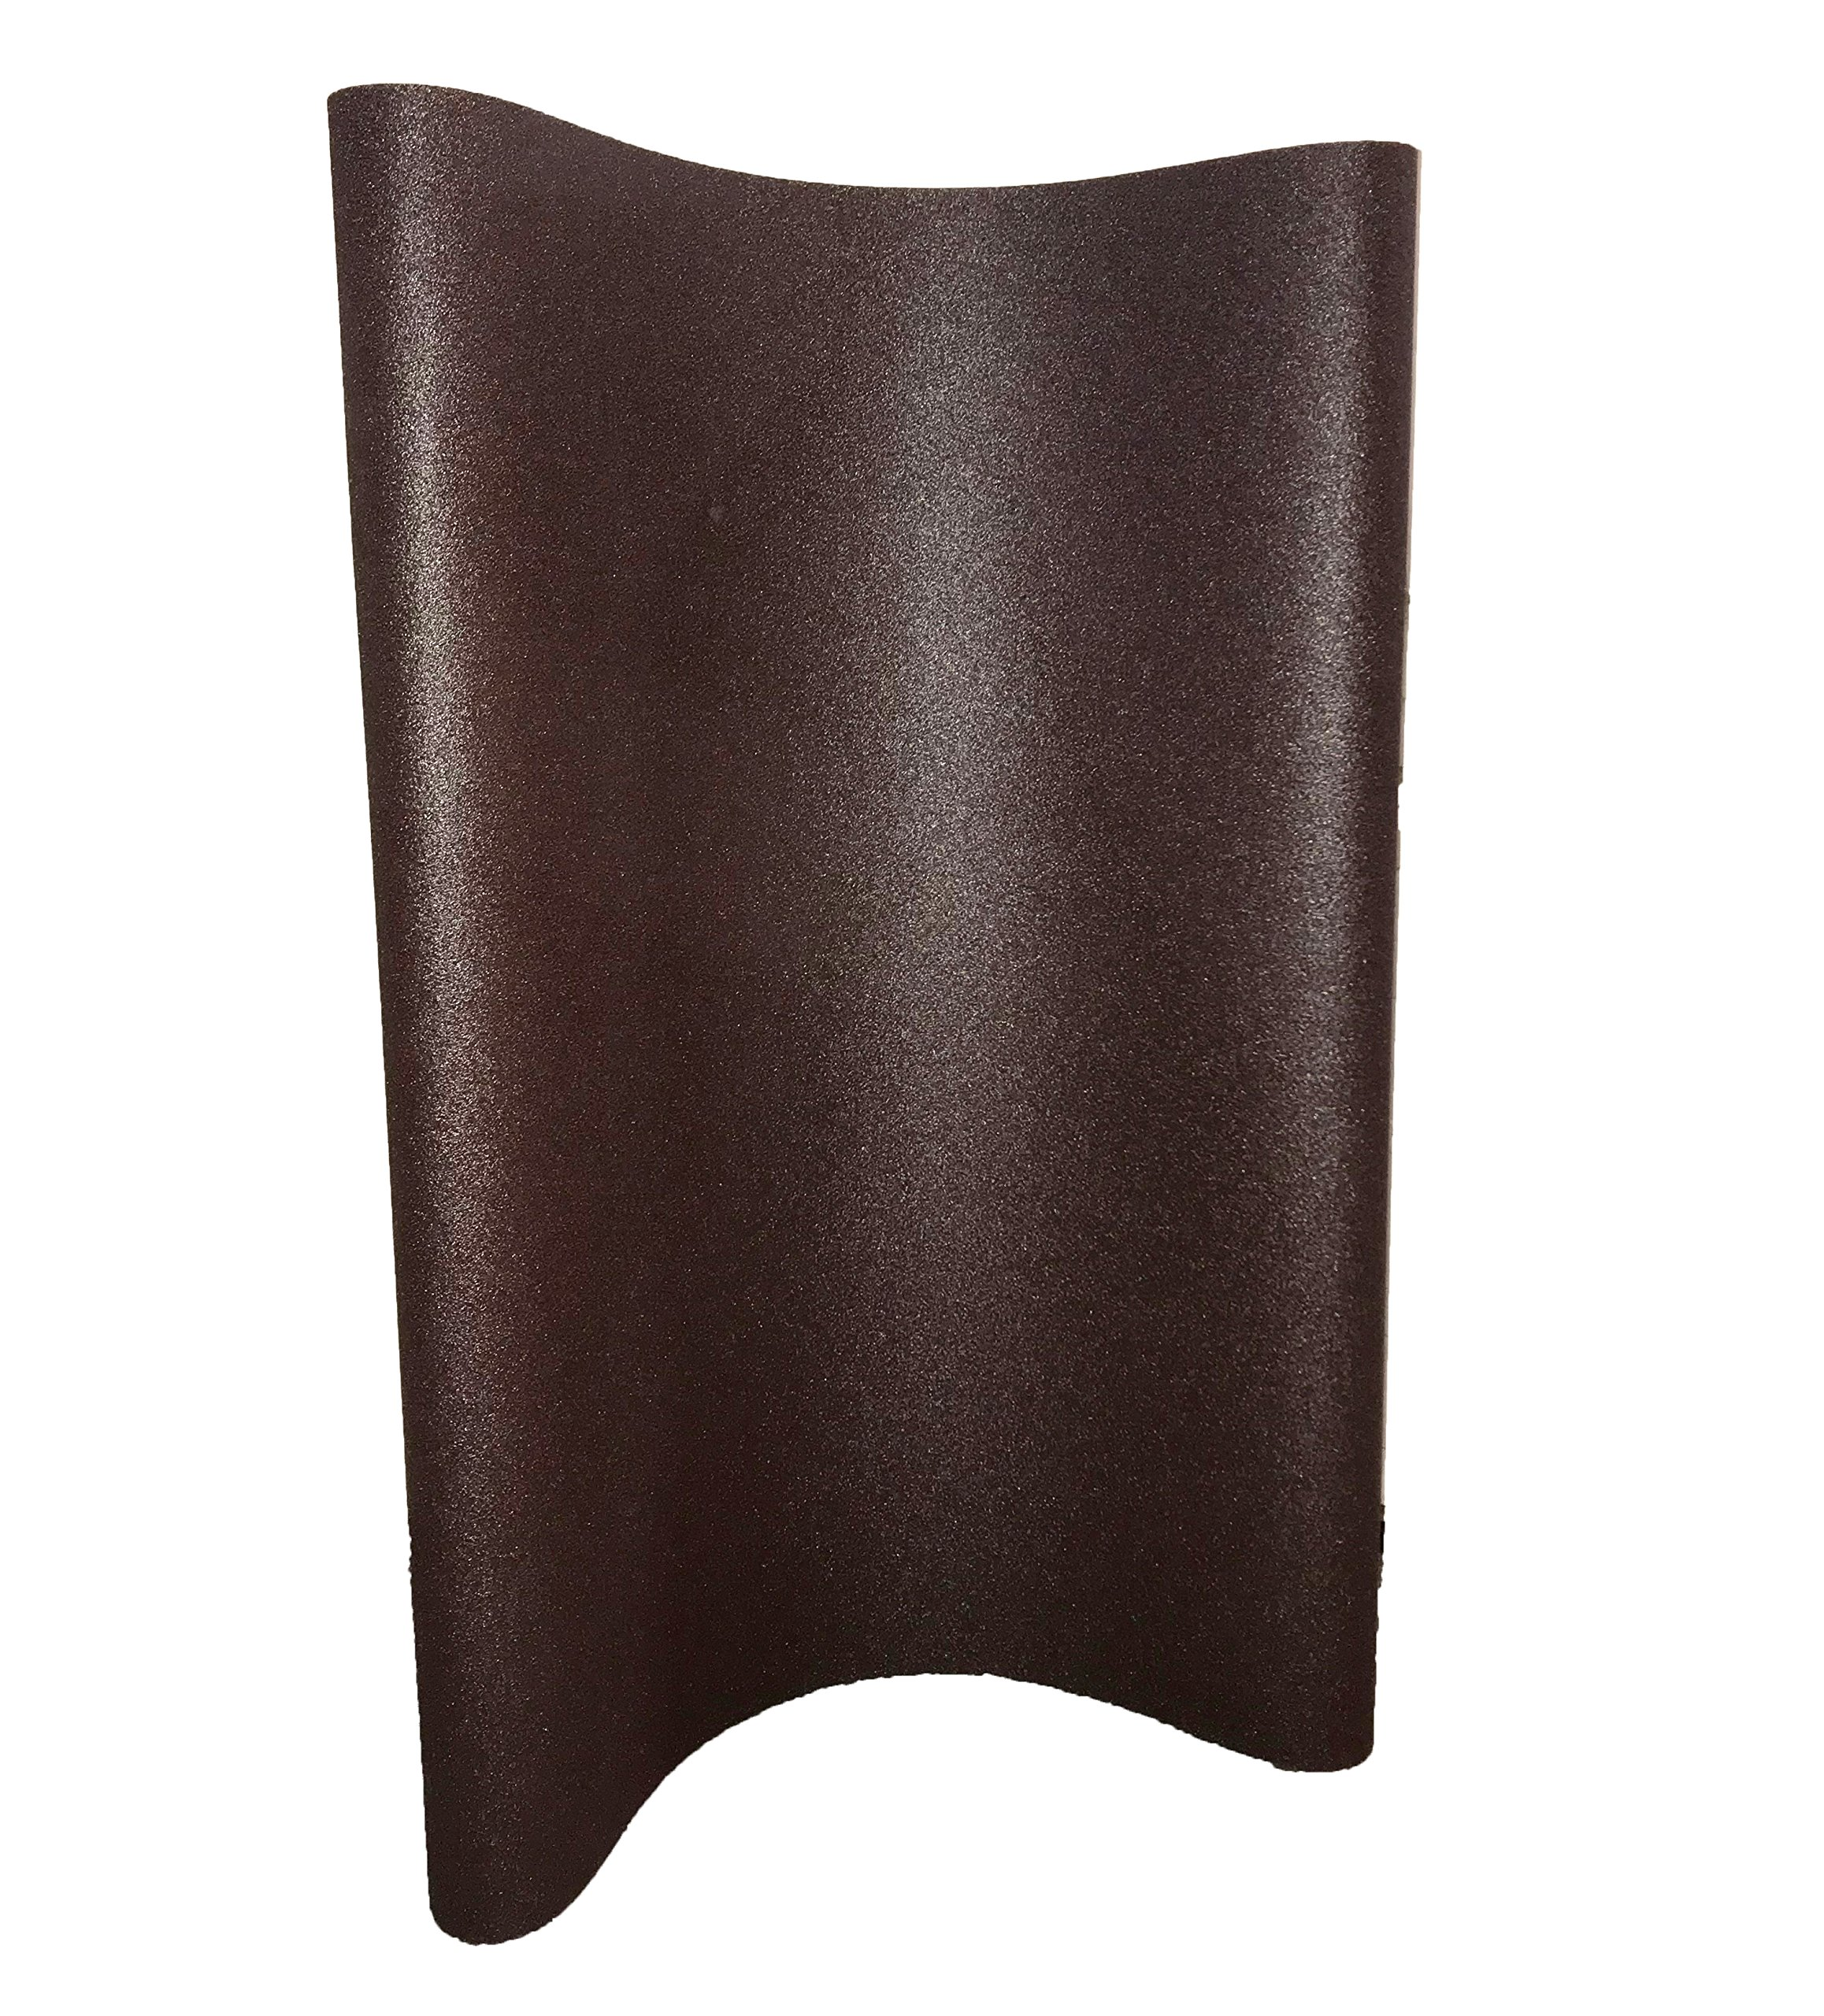 Sungold Abrasives 67768 Aluminum Oxide 120 Grit X-Weight Cloth Wide Sanding Belt (Box of 2), 37''X60'', by Sungold Abrasives